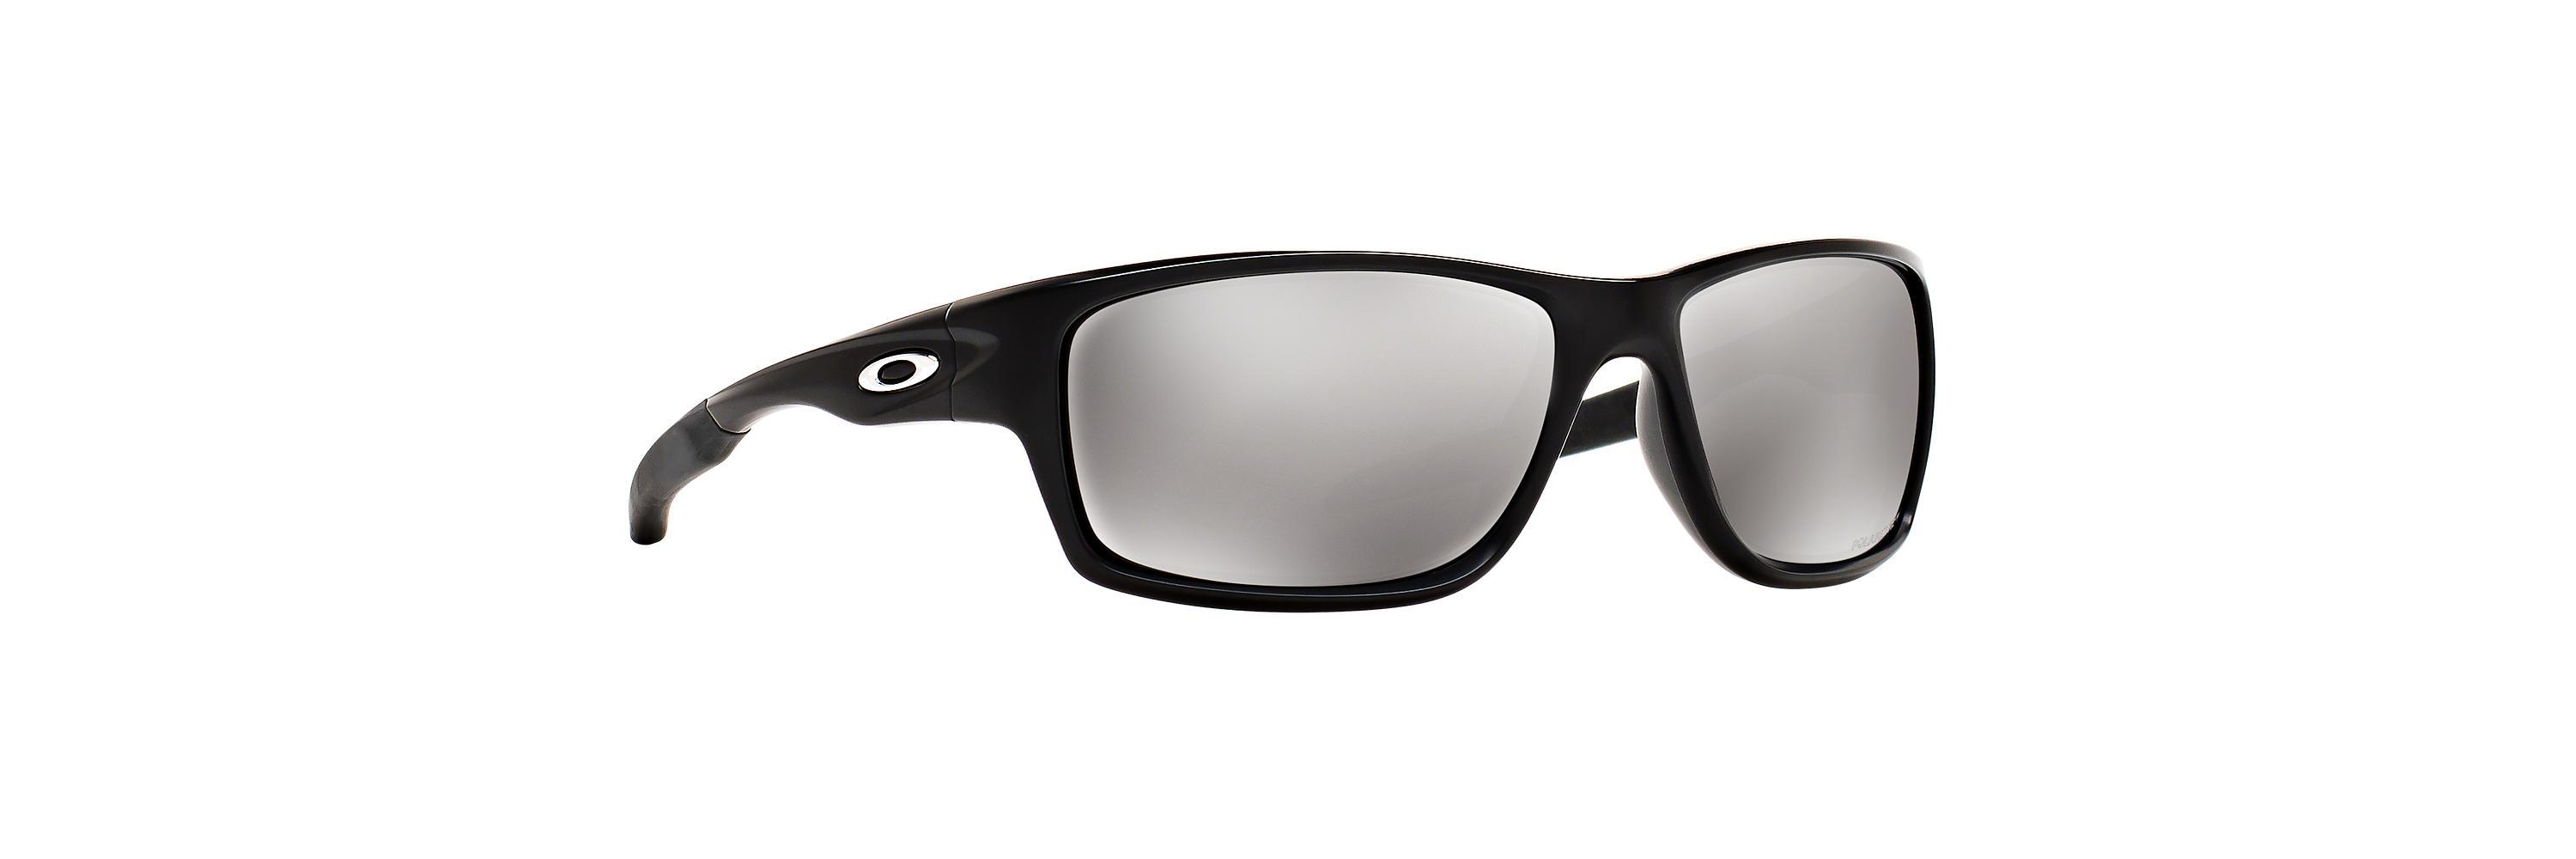 642fd48b6a1 Lyst - Oakley Oo9225 Canteen Only At Sunglass Hut in Black for Men